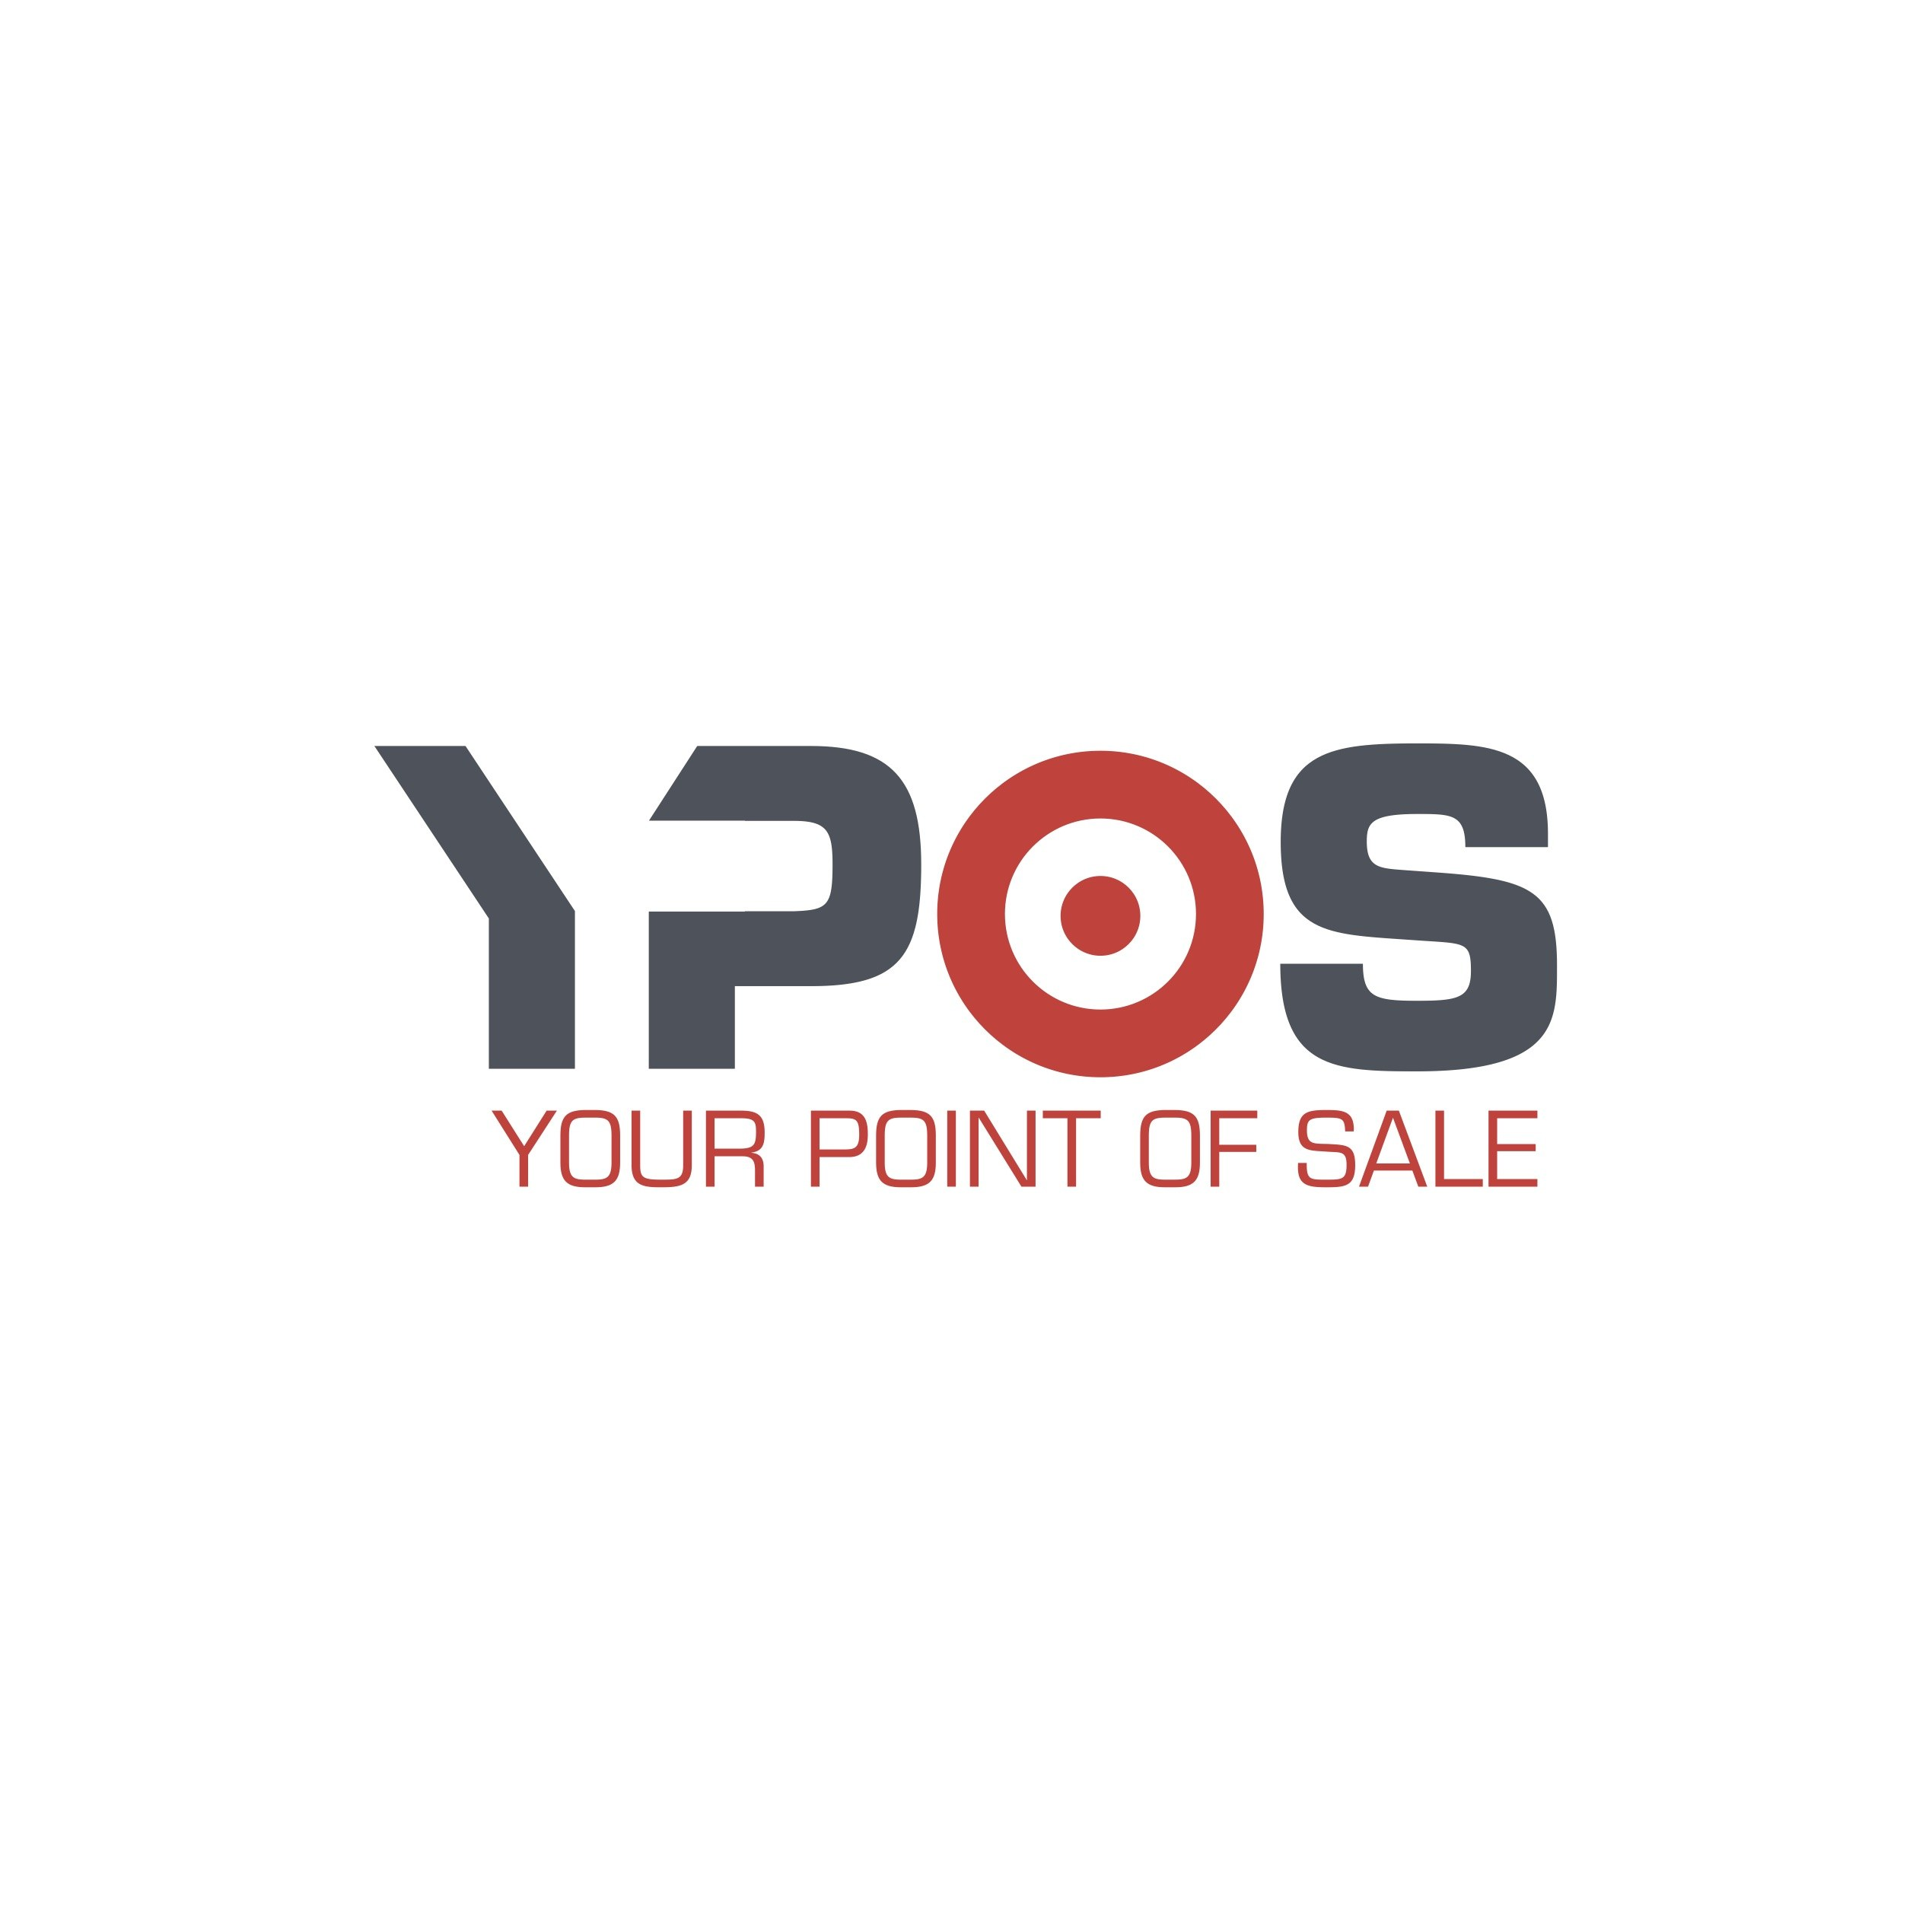 Yourpointofsale